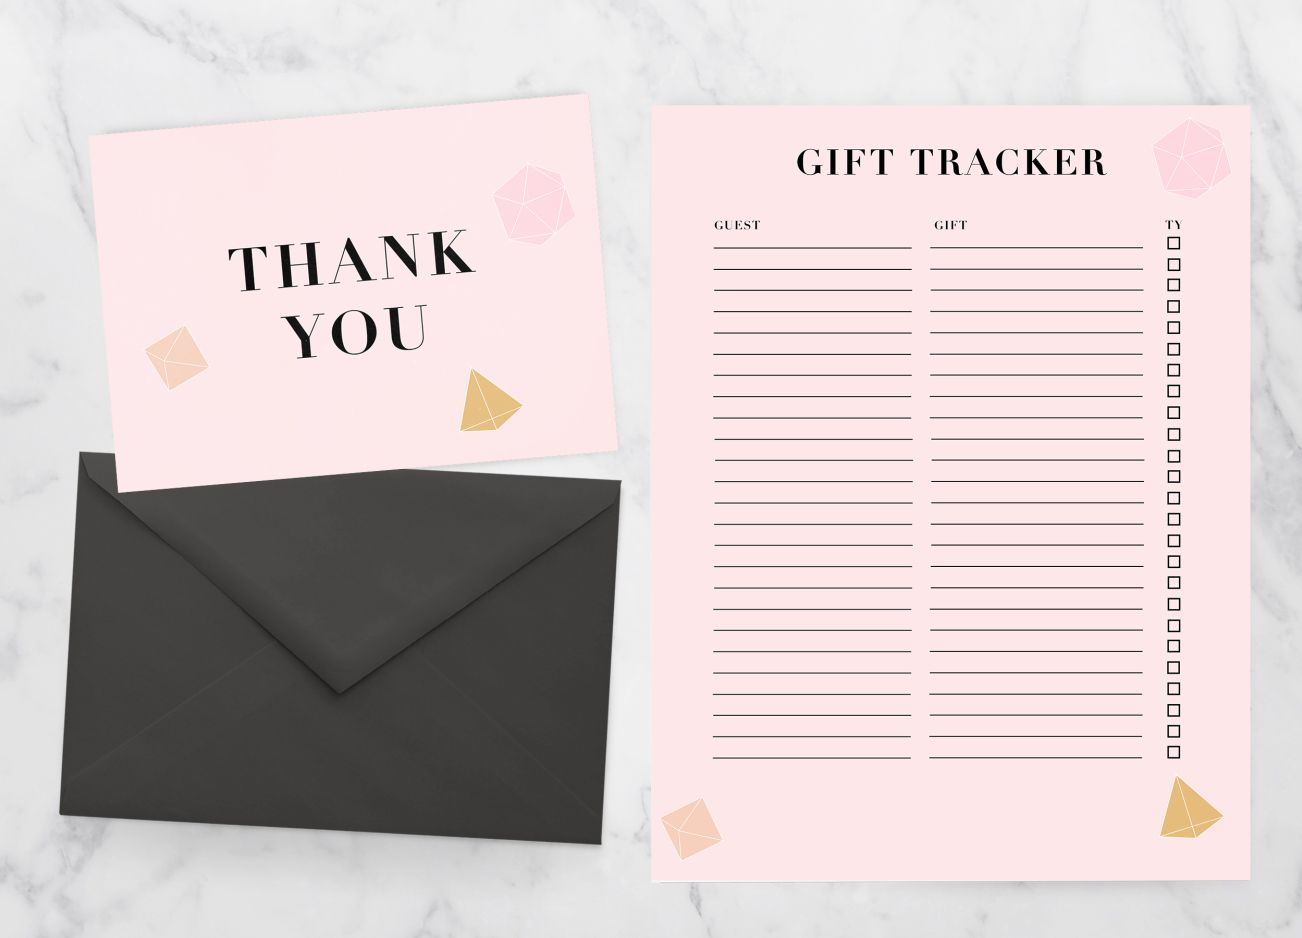 free printable thank you cards  u0026 gift tracker by saltwater designs  shopsaltwaterdesigns com